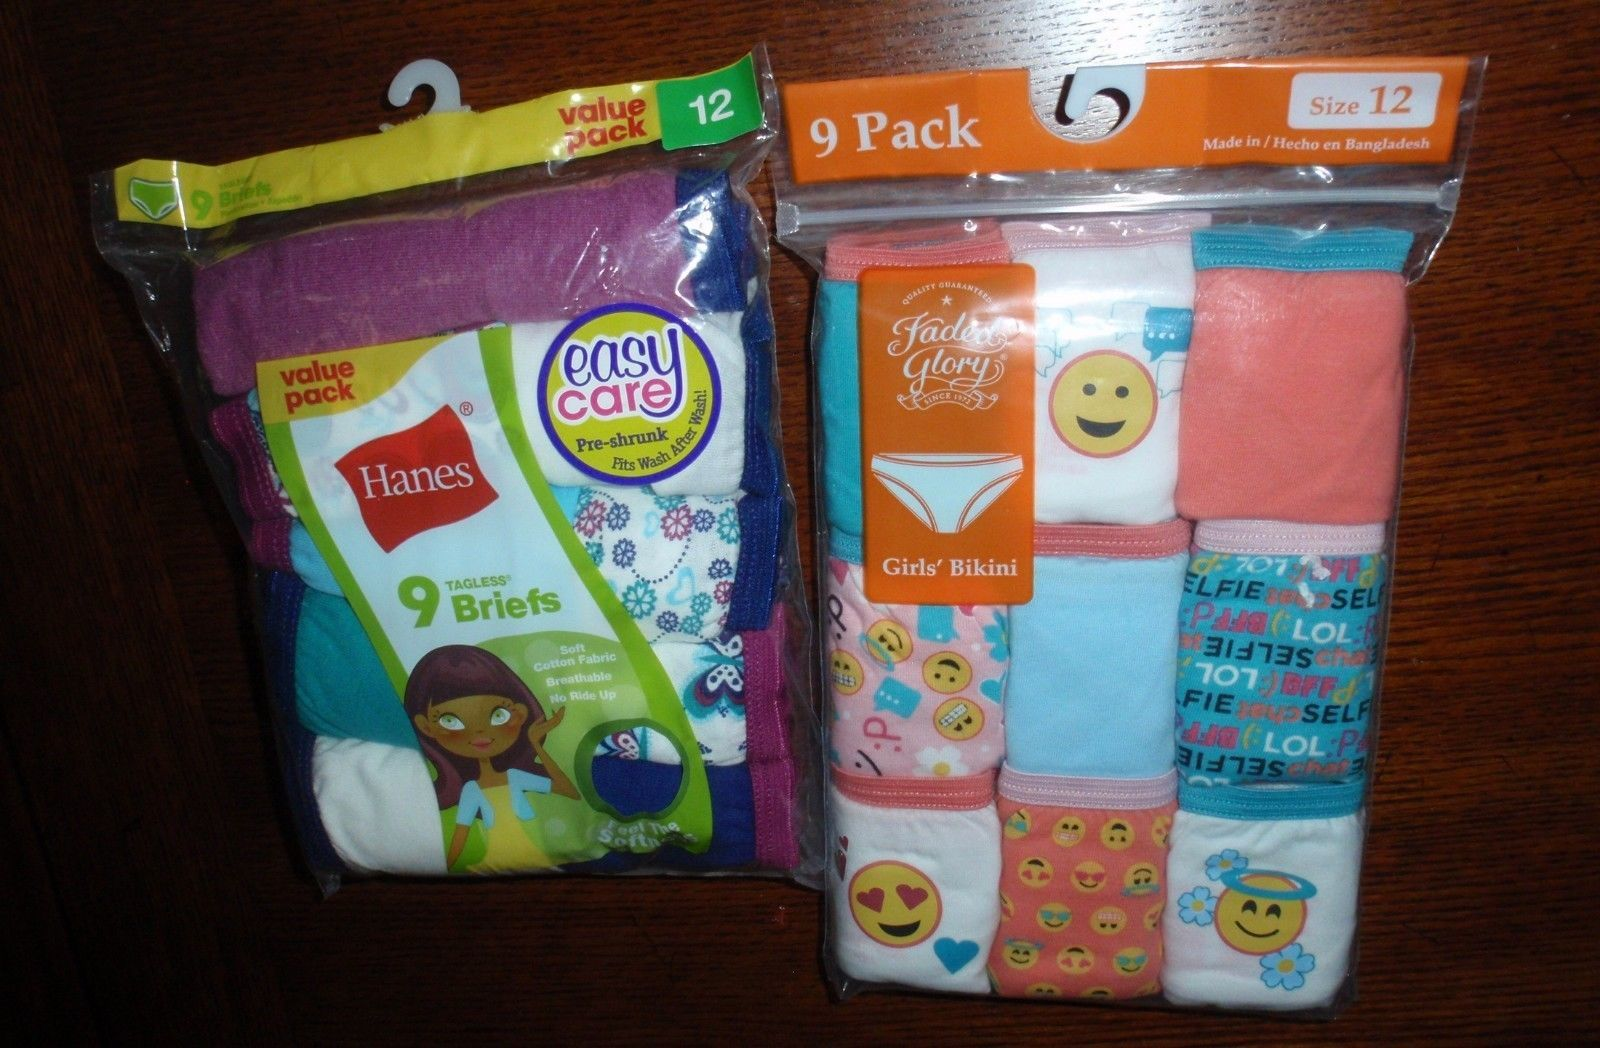 70b0f59e397f Lot Of 18 Hanes & Faded Glory Girls and 24 similar items. S l1600